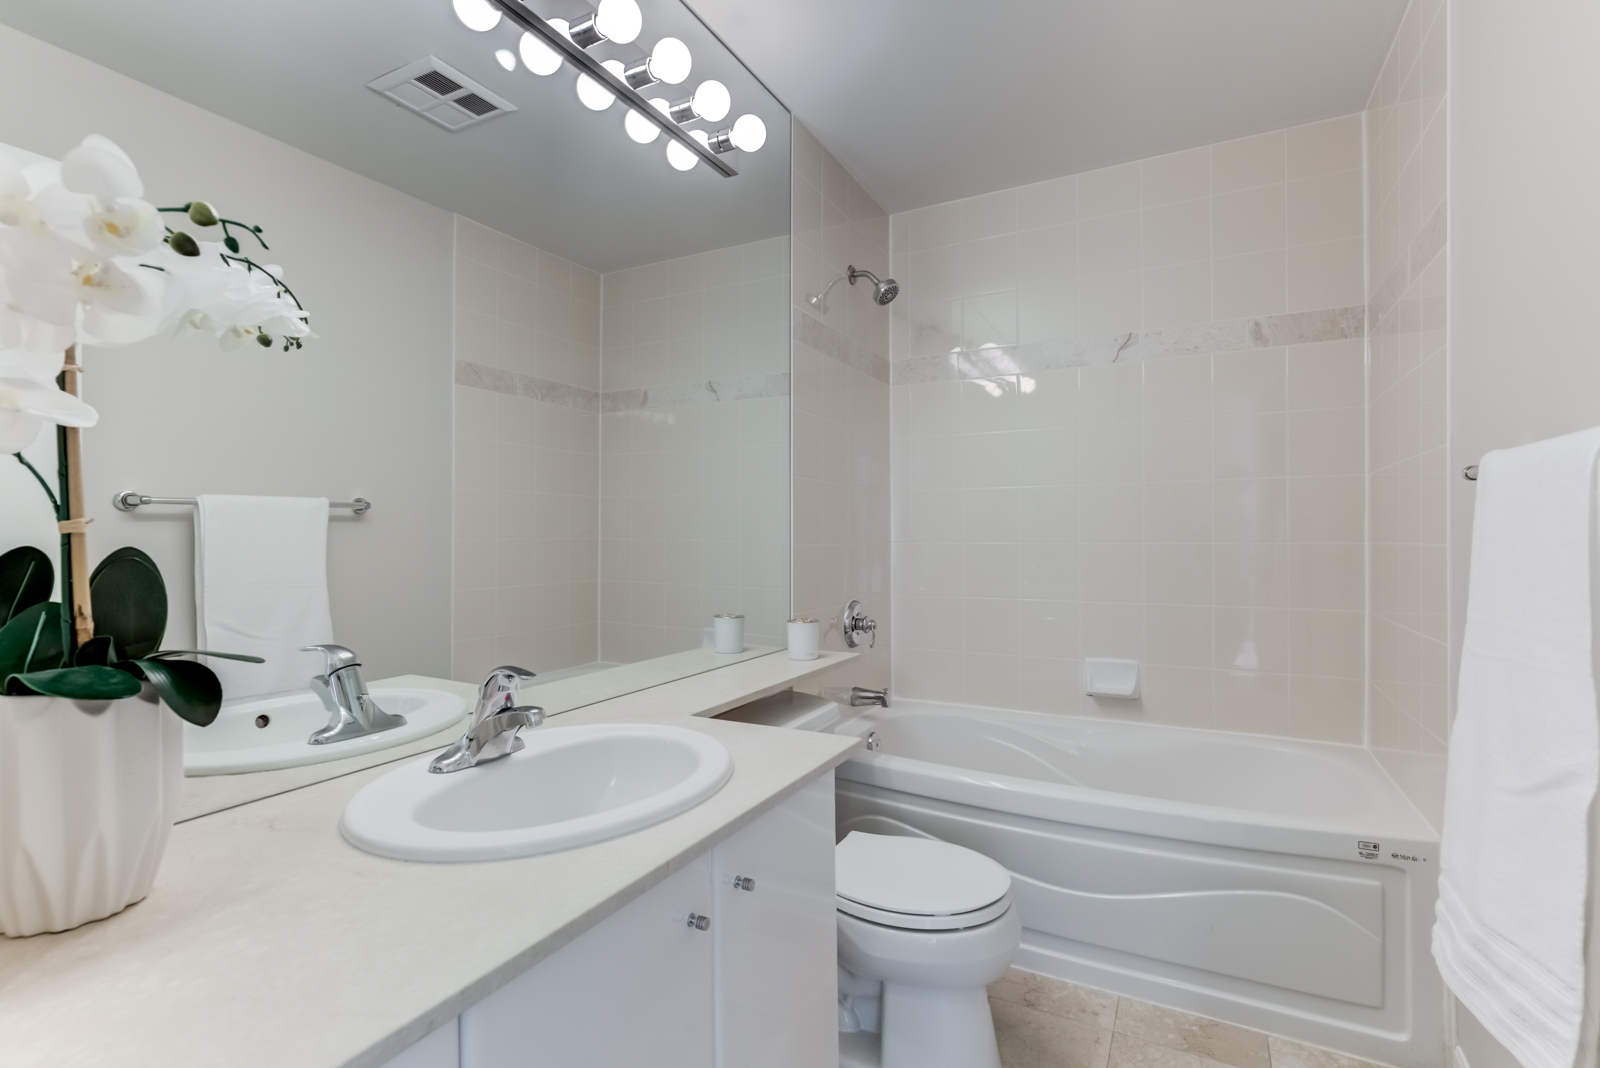 300 Bloor St E Unit 1809 ensuite bath with white counters, cabinets, beige tiles, white tub and chrome fixtures.